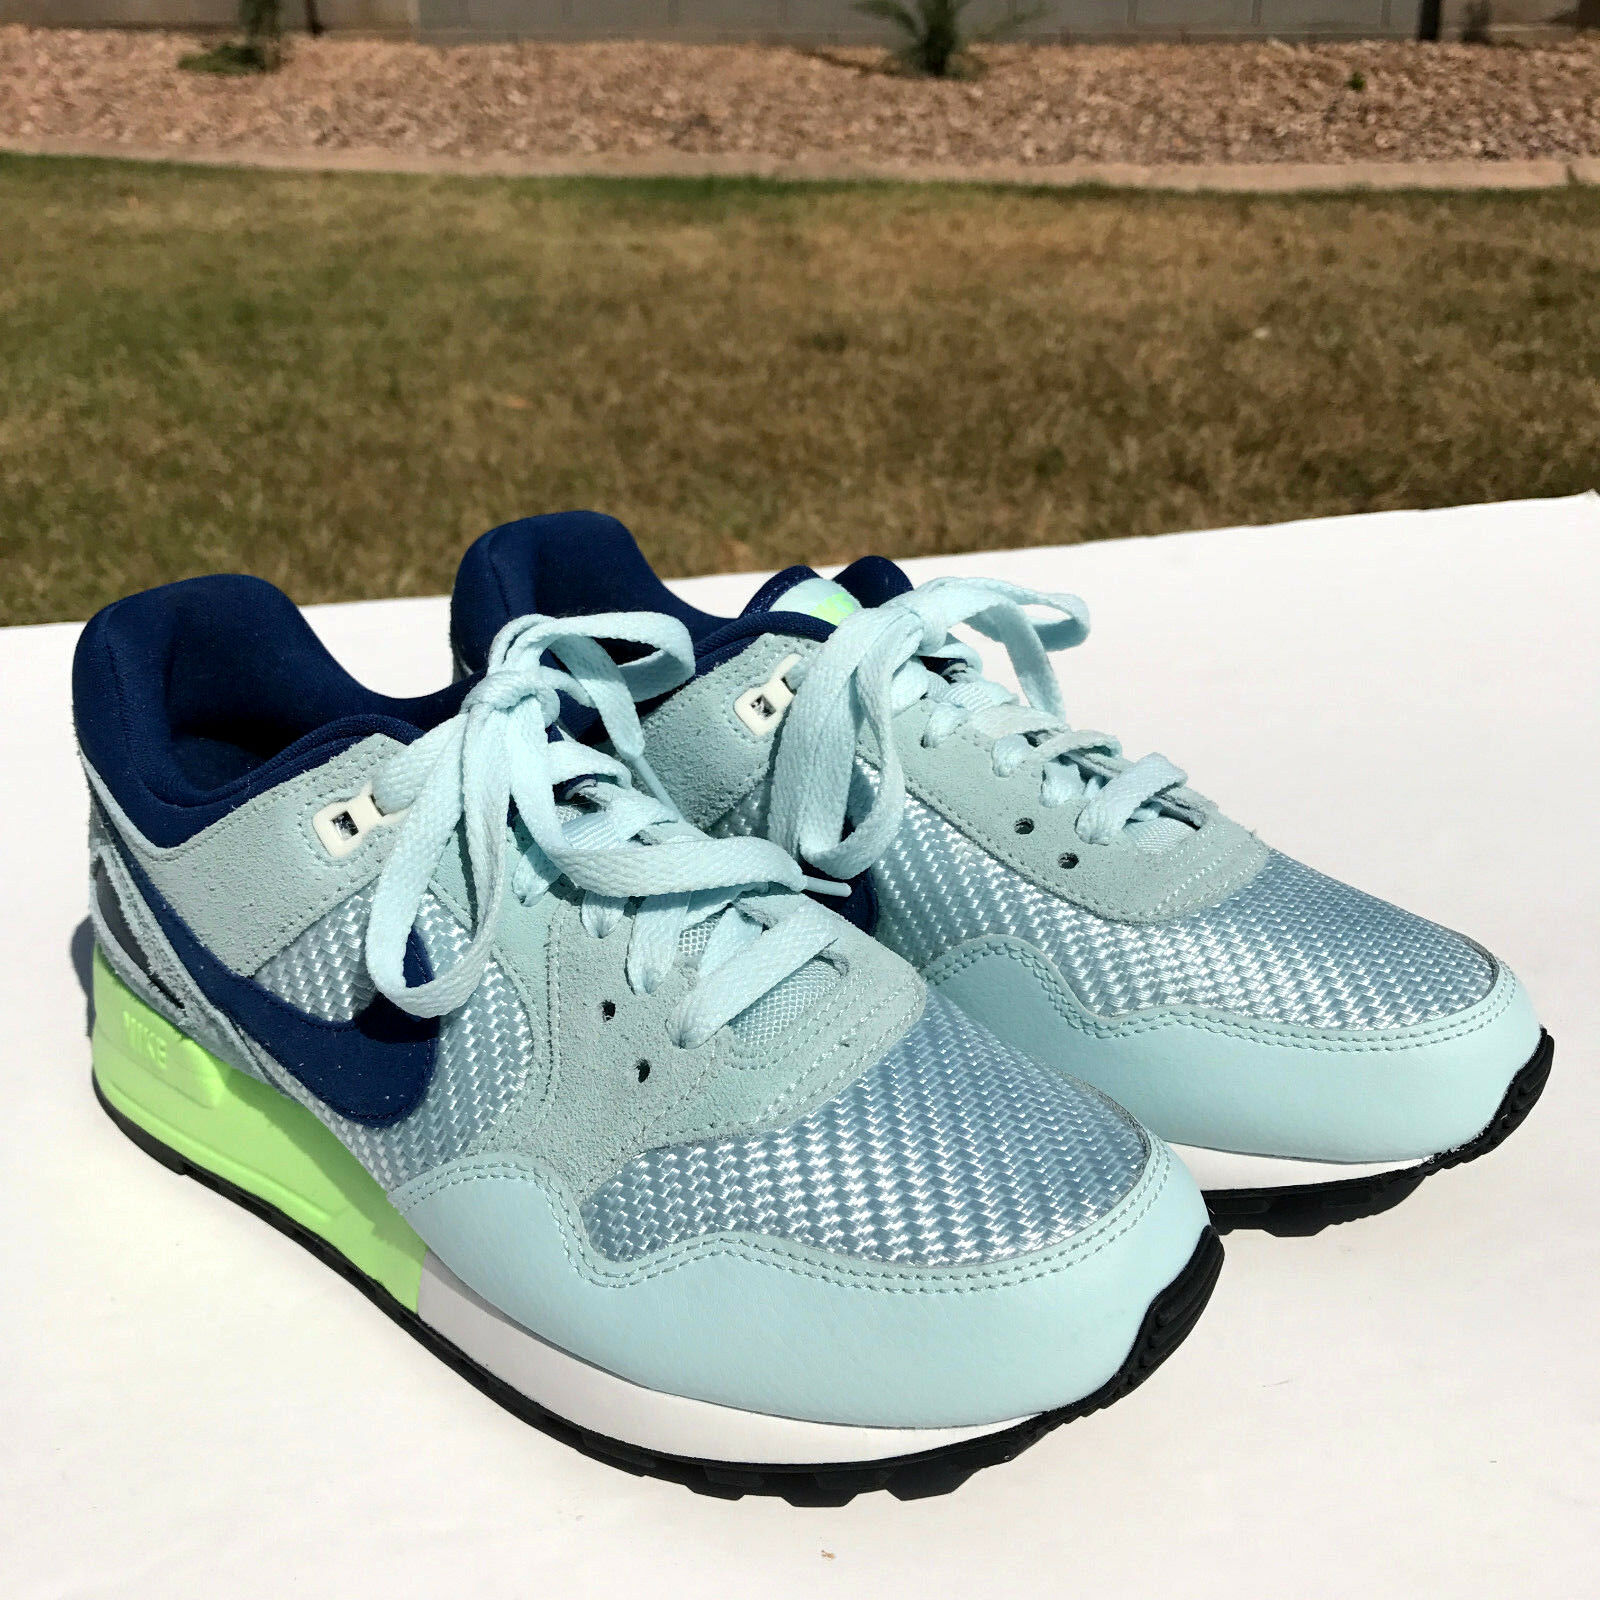 Nike Air Pegasus 89 Running Shoes Womens 6.5 Glacier Blue/Wh/Nvy 844888 400 NEW